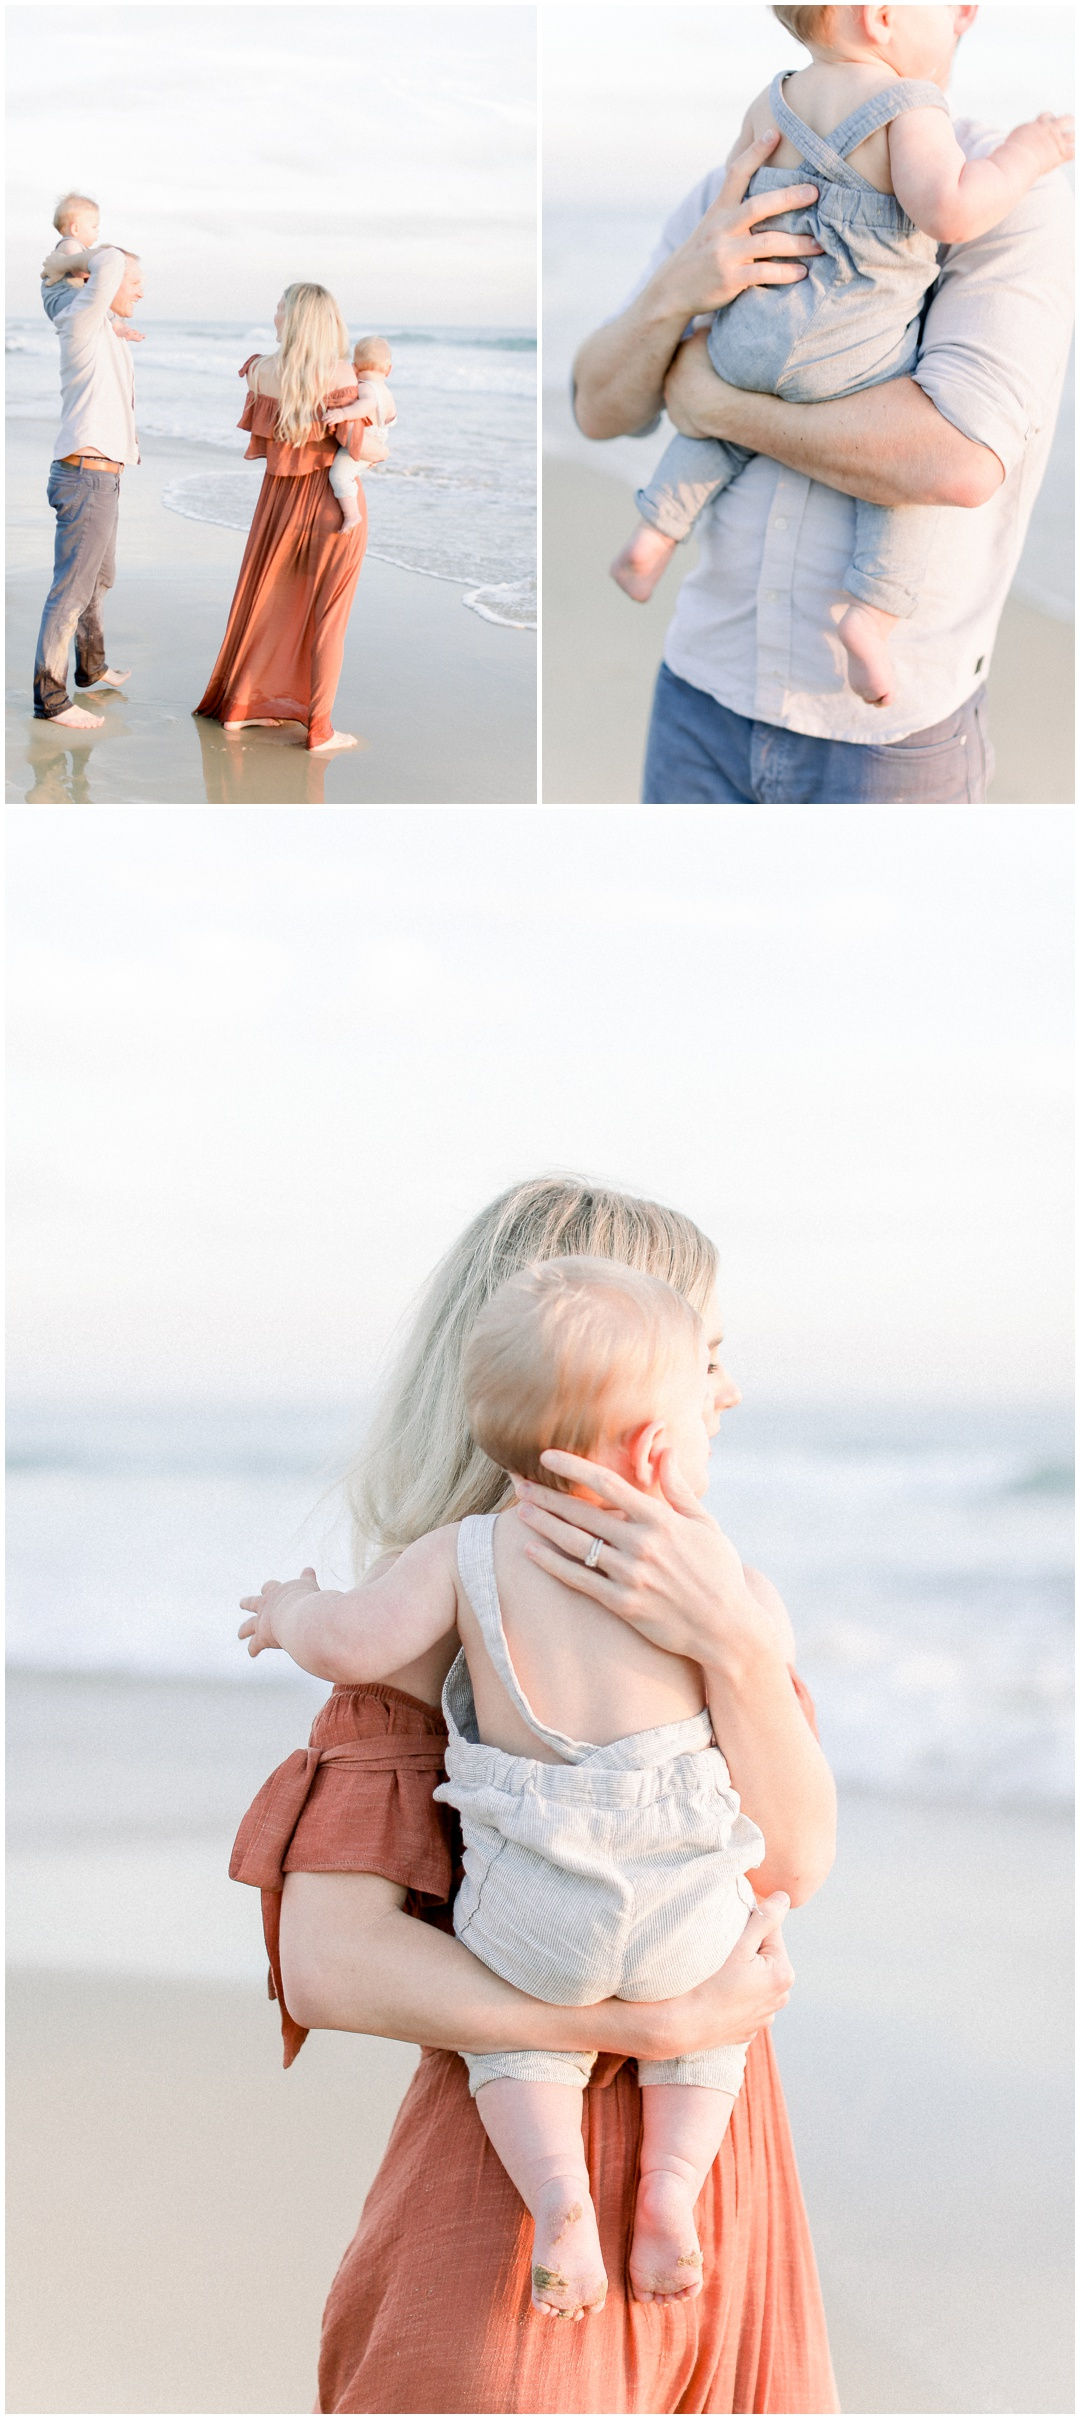 Newport_Beach_Newborn_Light_Airy_Natural_Photographer_Newport_Beach_Photographer_Orange_County_Family_Photographer_Cori_Kleckner_Photography_Huntington_Beach_Photographer_Family_OC_Newborn_Kelly_Bandak_Nik_Bandak__3531.jpg